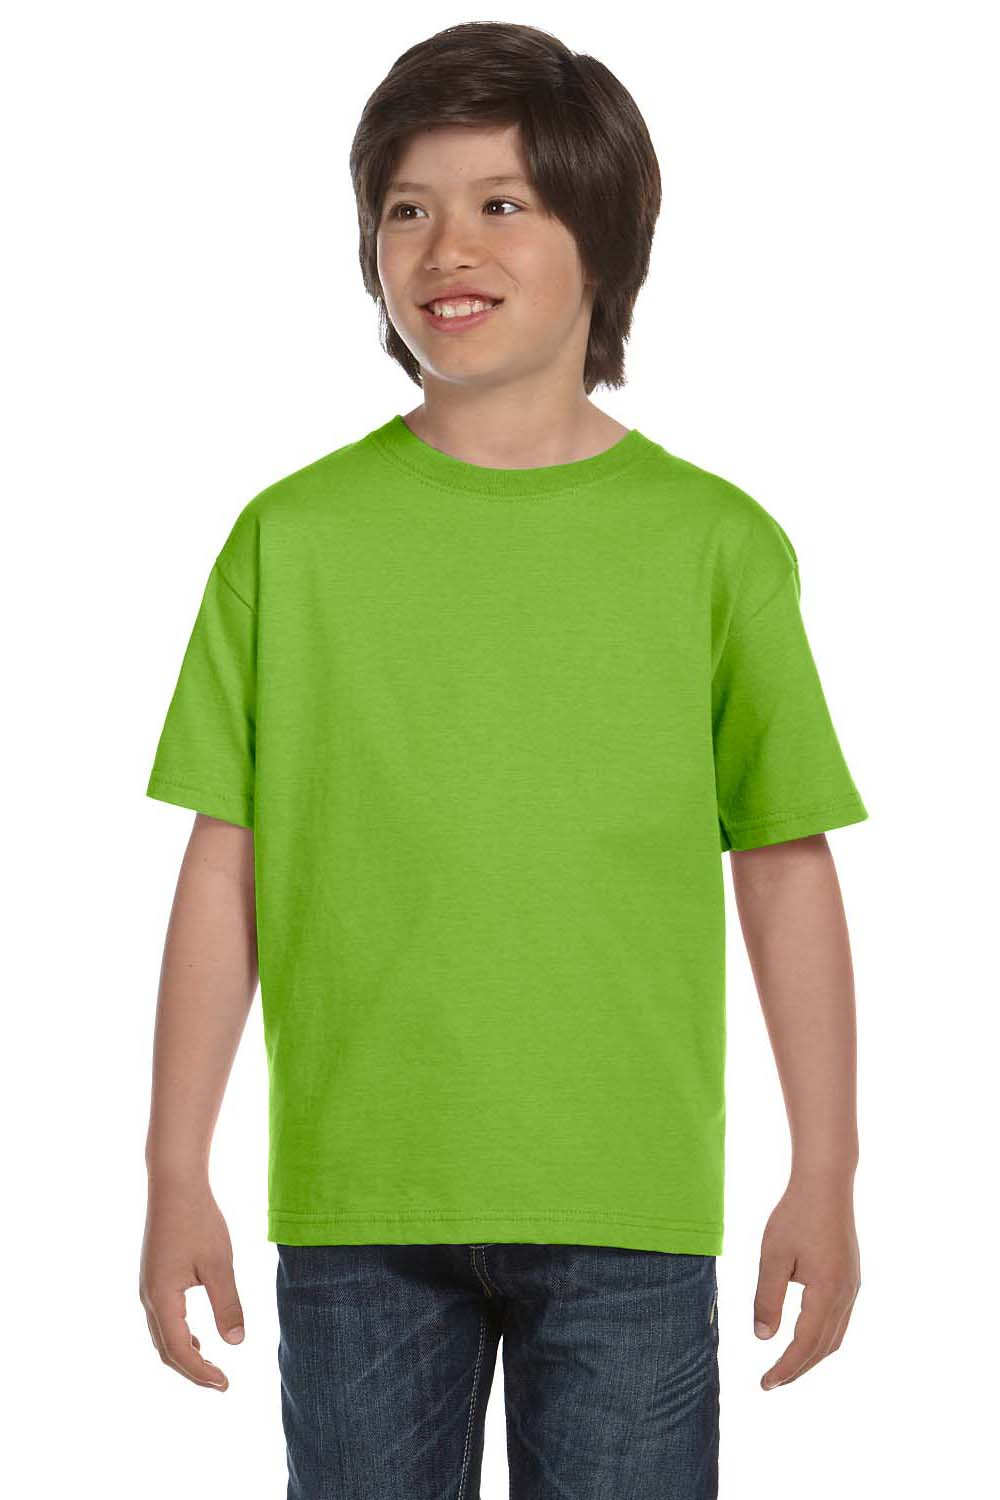 Hanes 5380 Youth Beefy-T Short Sleeve Crewneck T-Shirt Lime Green Front